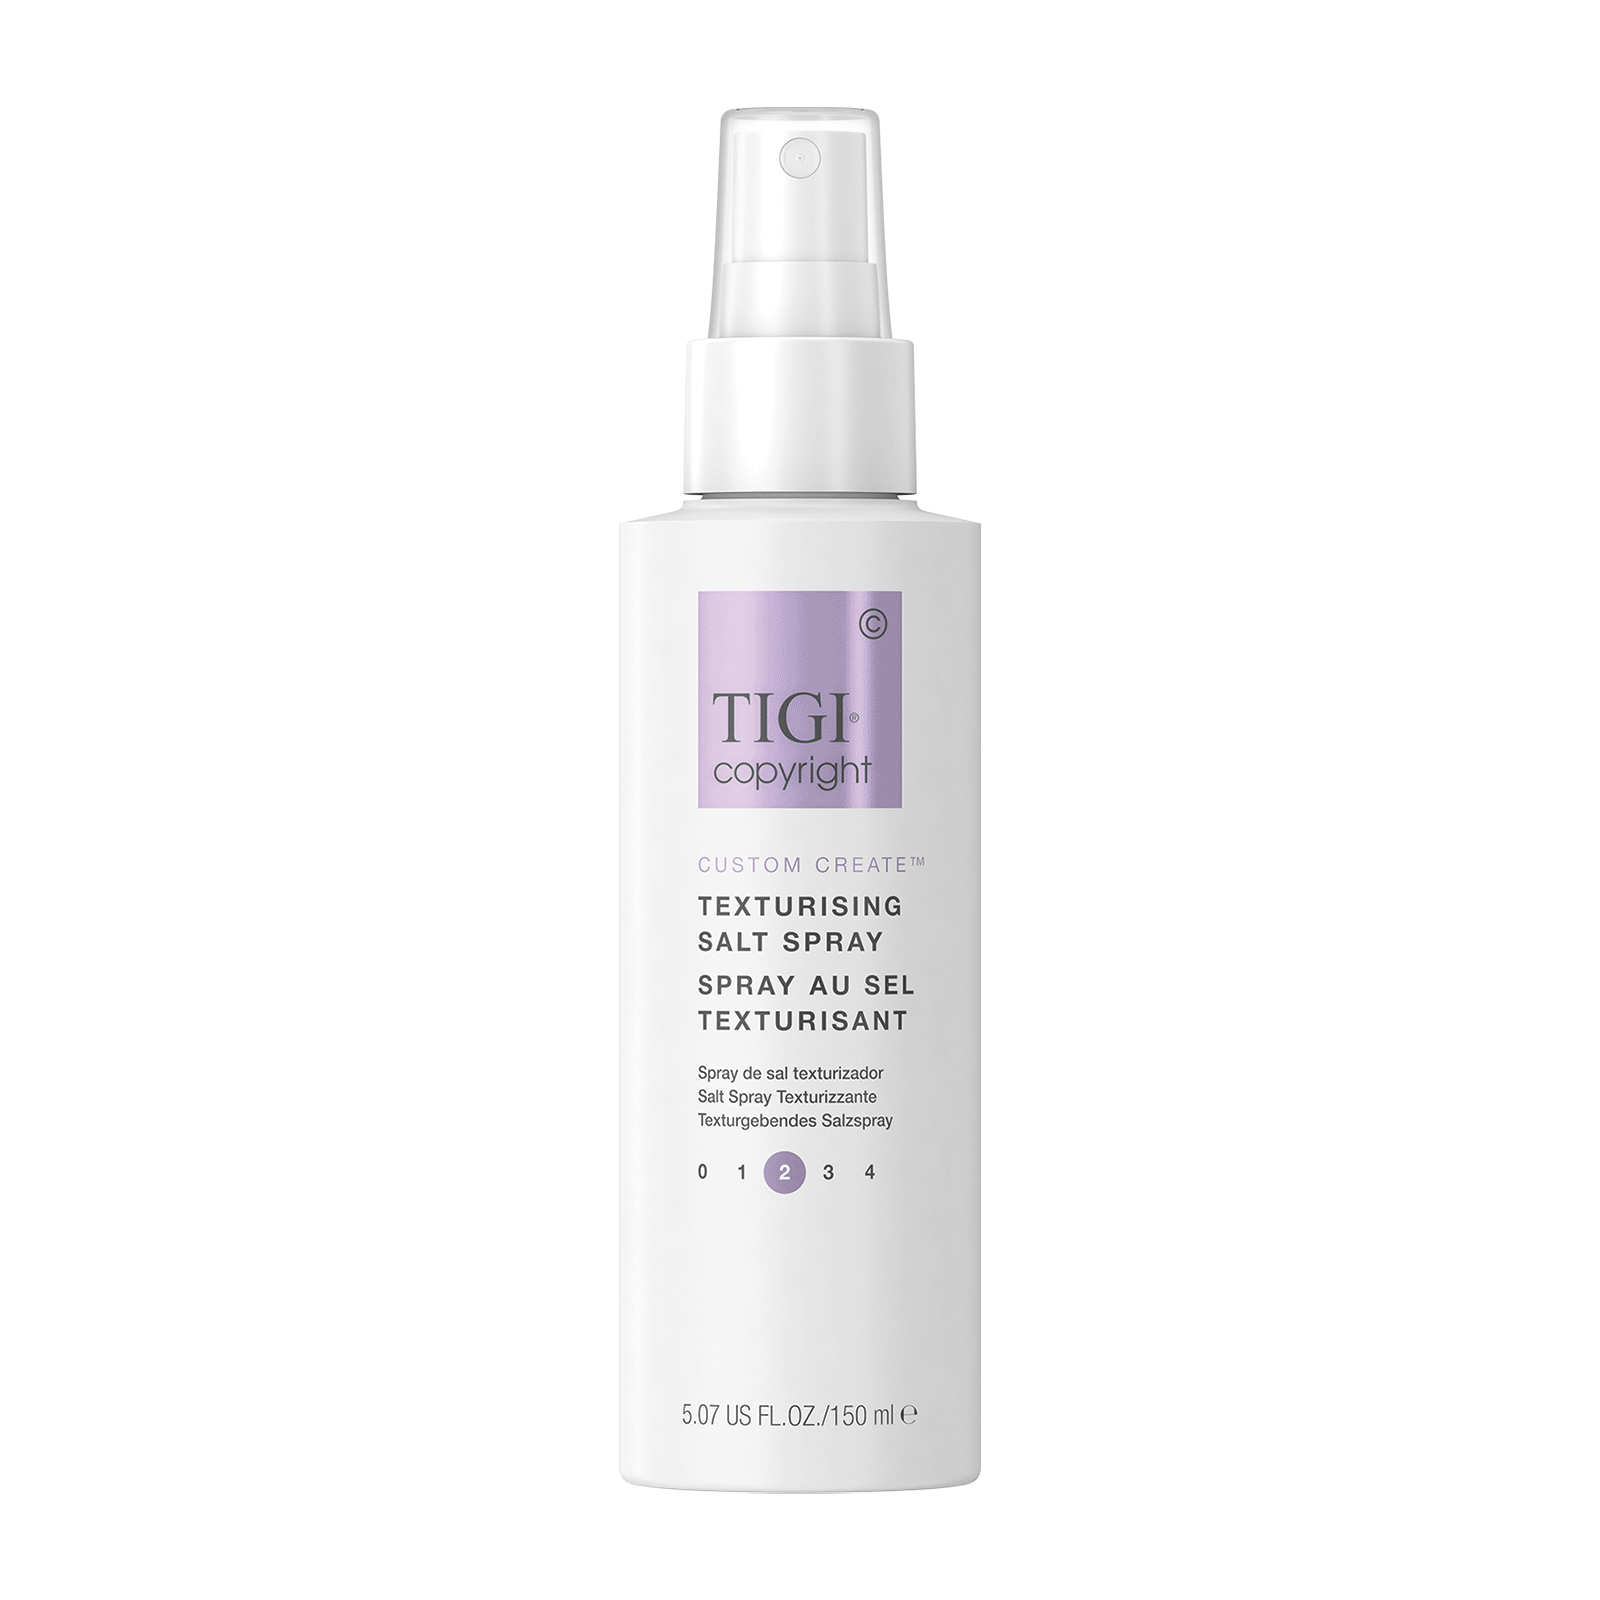 Copyright Texturising Salt Spray